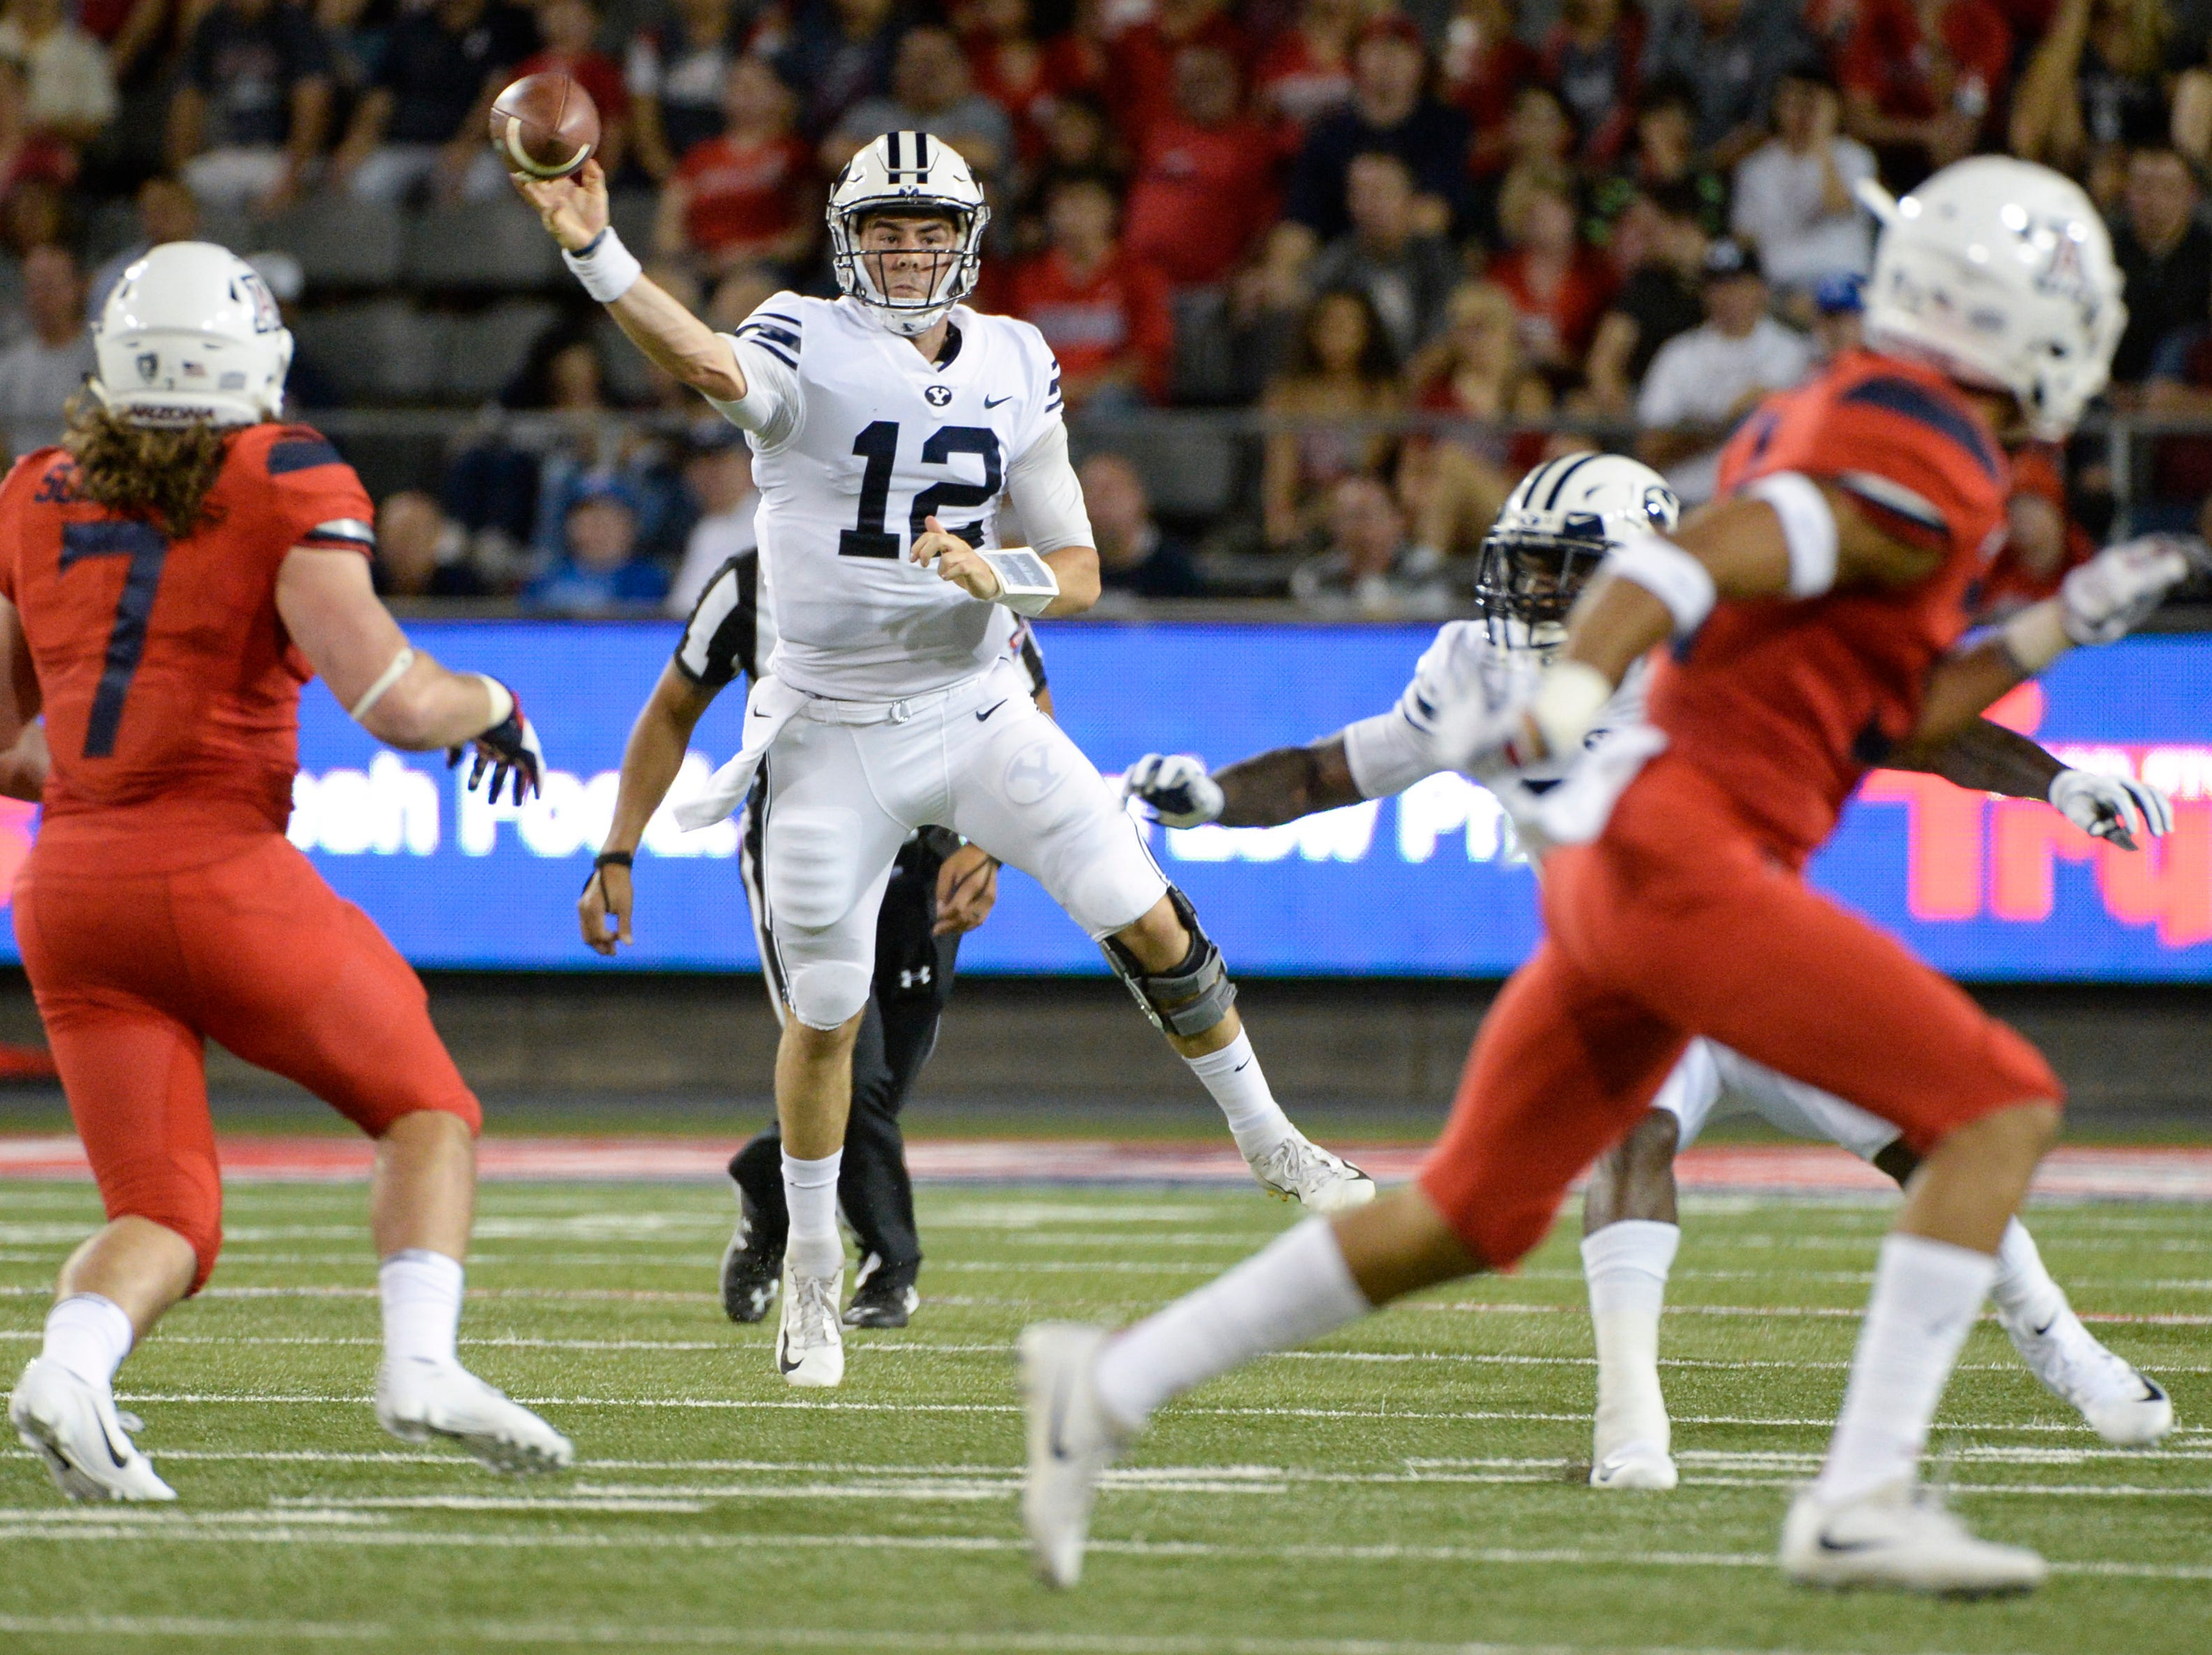 Sep 1, 2018; Tucson, AZ, USA; Brigham Young Cougars quarterback Tanner Mangum (12) passes the ball under pressure from Arizona Wildcats linebacker Colin Schooler (7) during the first quarter at Arizona Stadium.